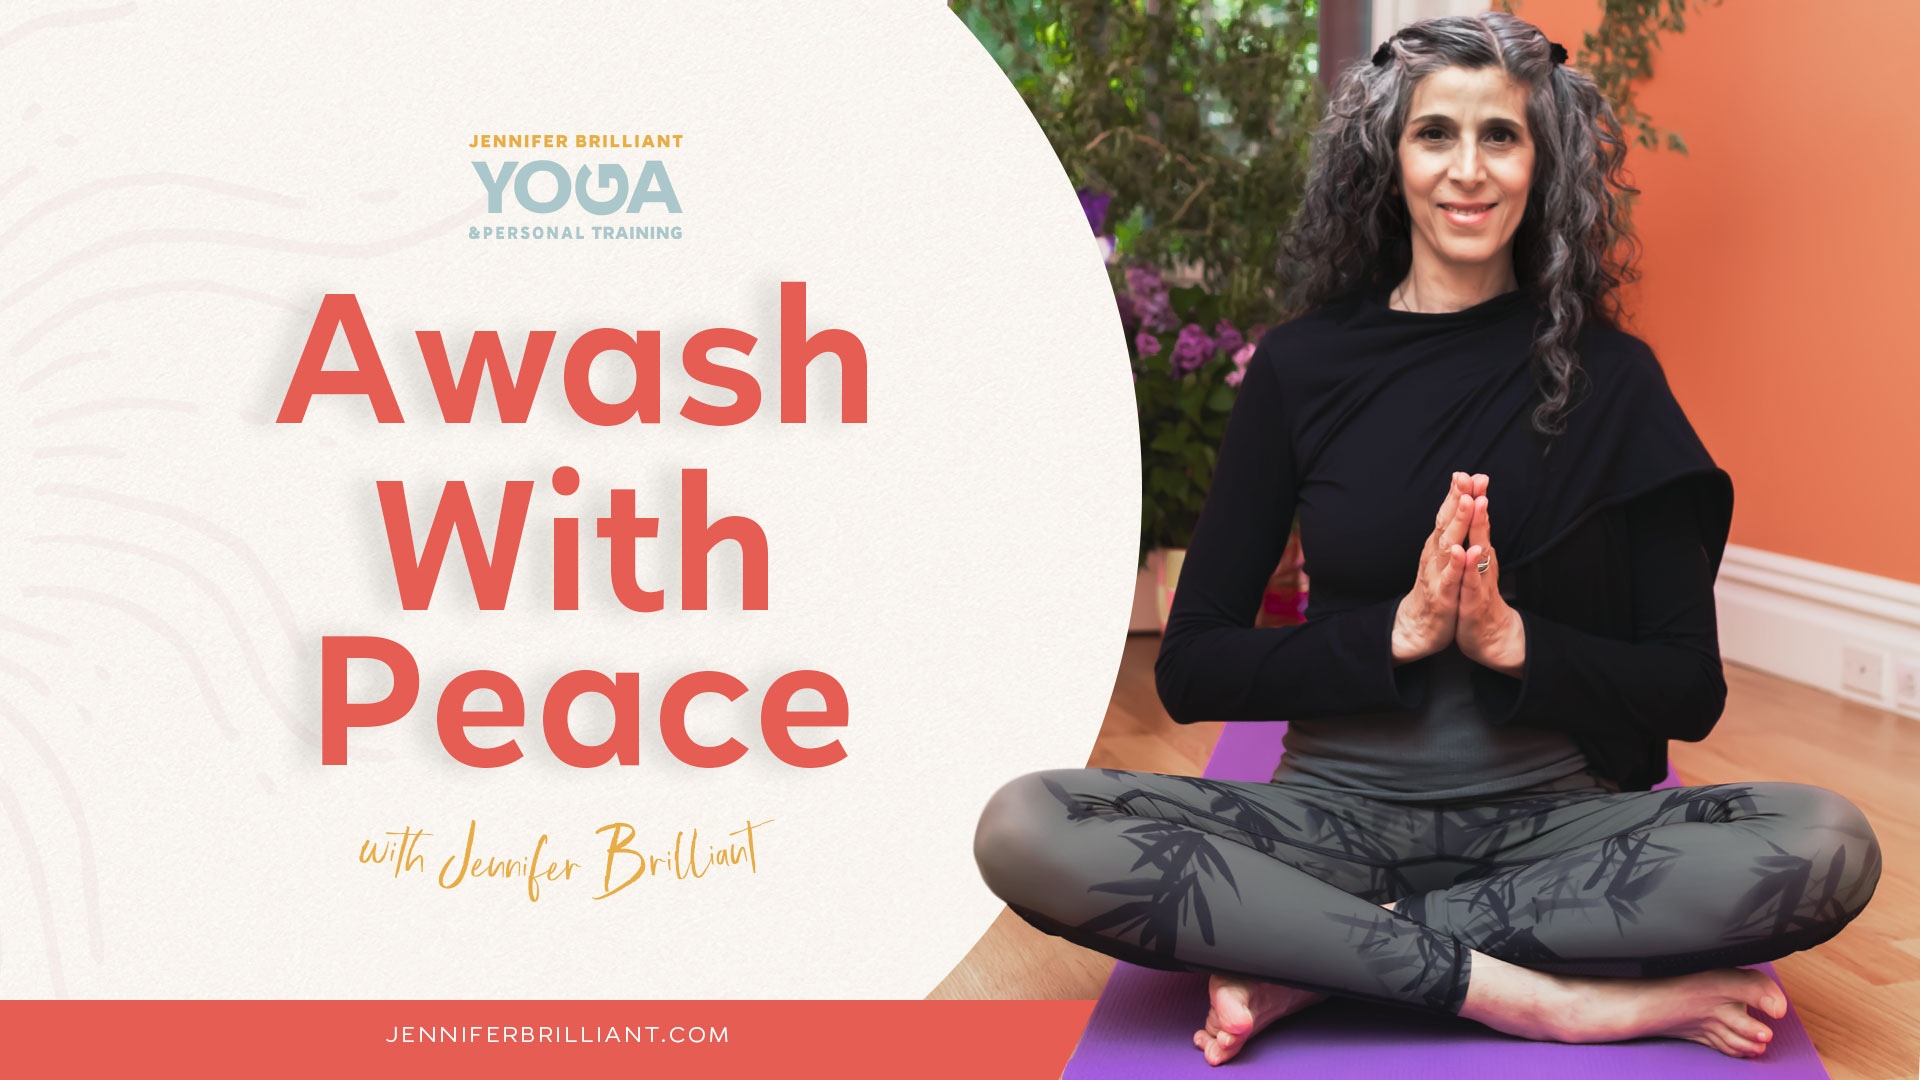 On-Demand Video Yoga Awash With Peace